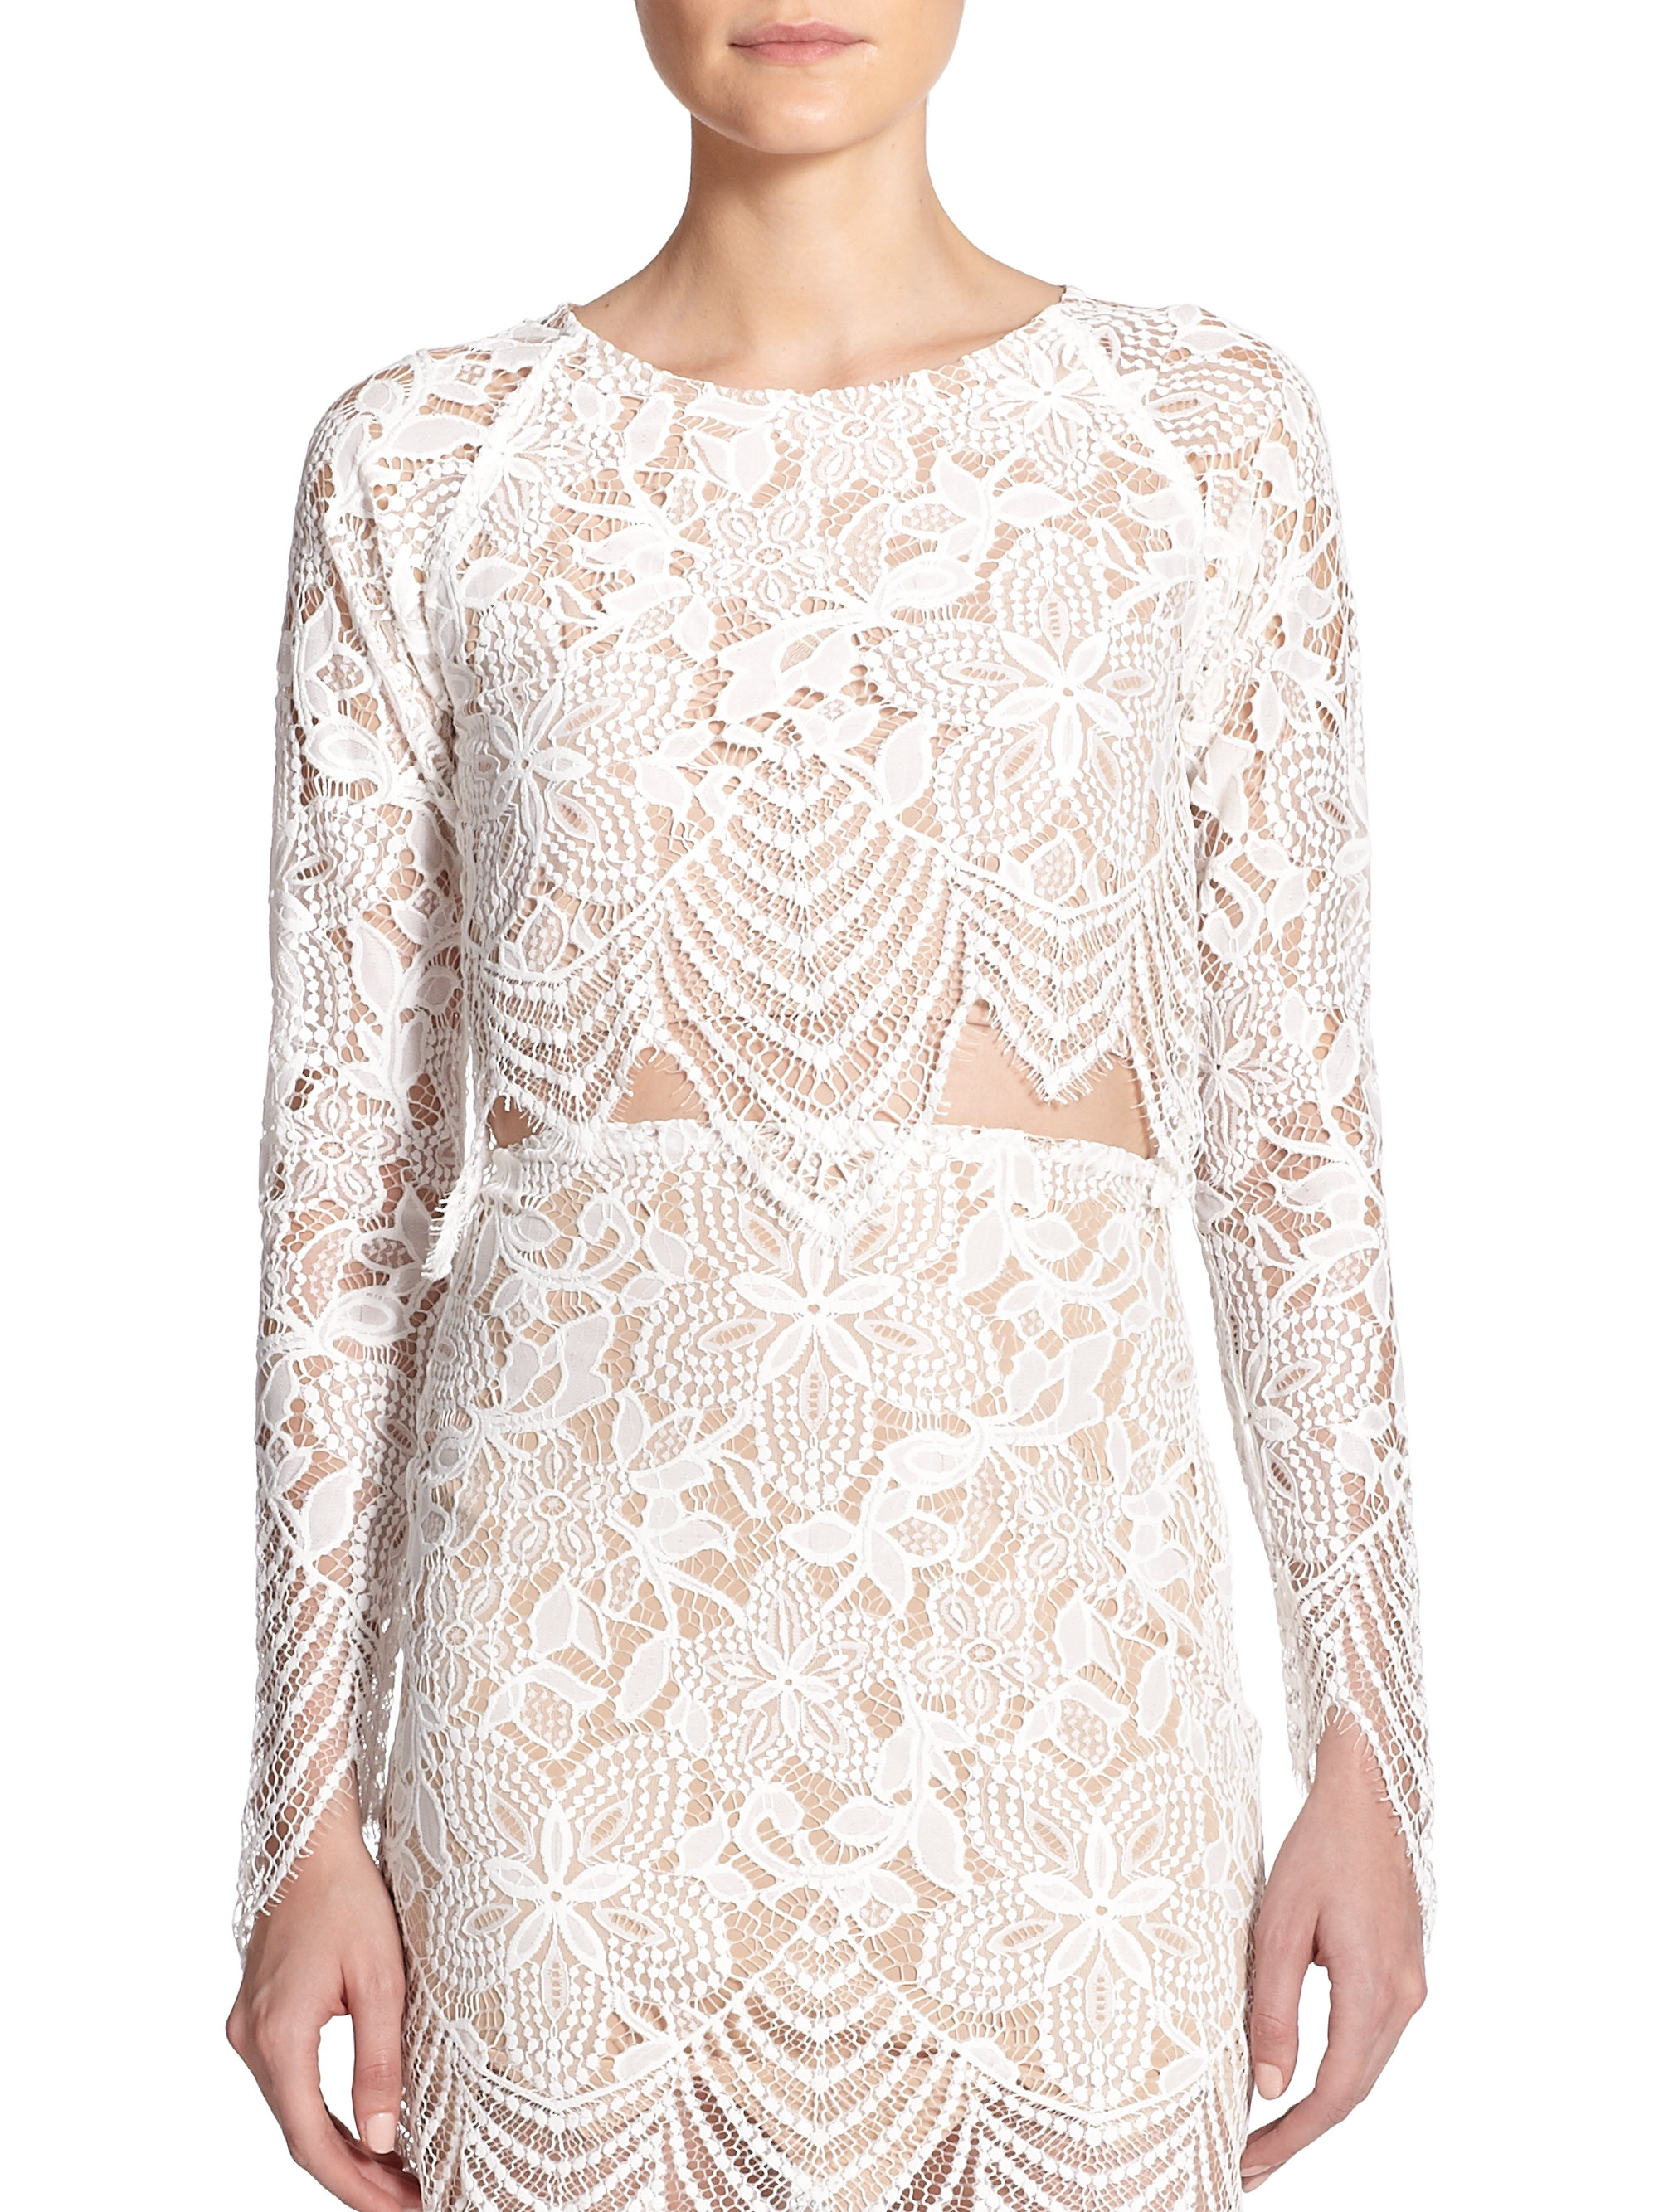 971724f340a For Love & Lemons Guava Lace Cropped Top in White - Lyst